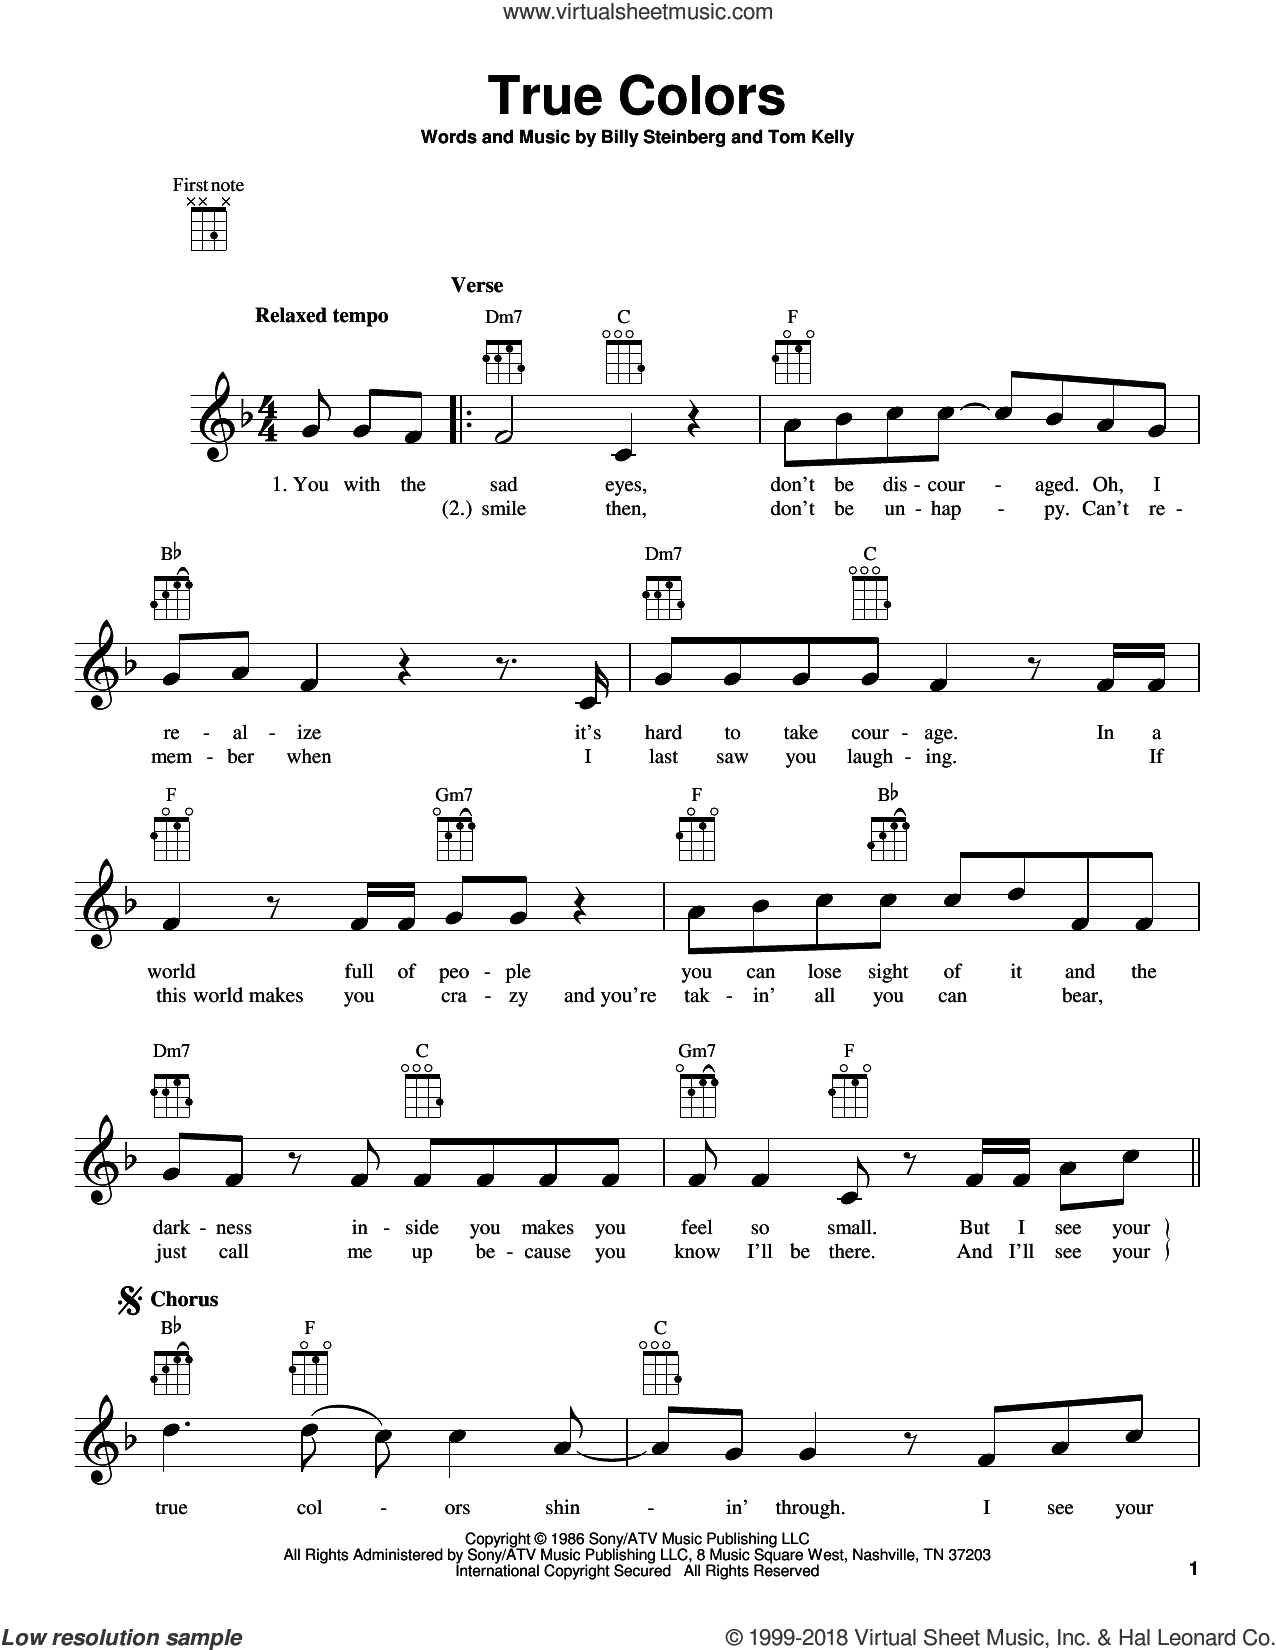 True Colors sheet music for ukulele by Billy Steinberg, Cyndi Lauper, Phil Collins and Tom Kelly, intermediate skill level